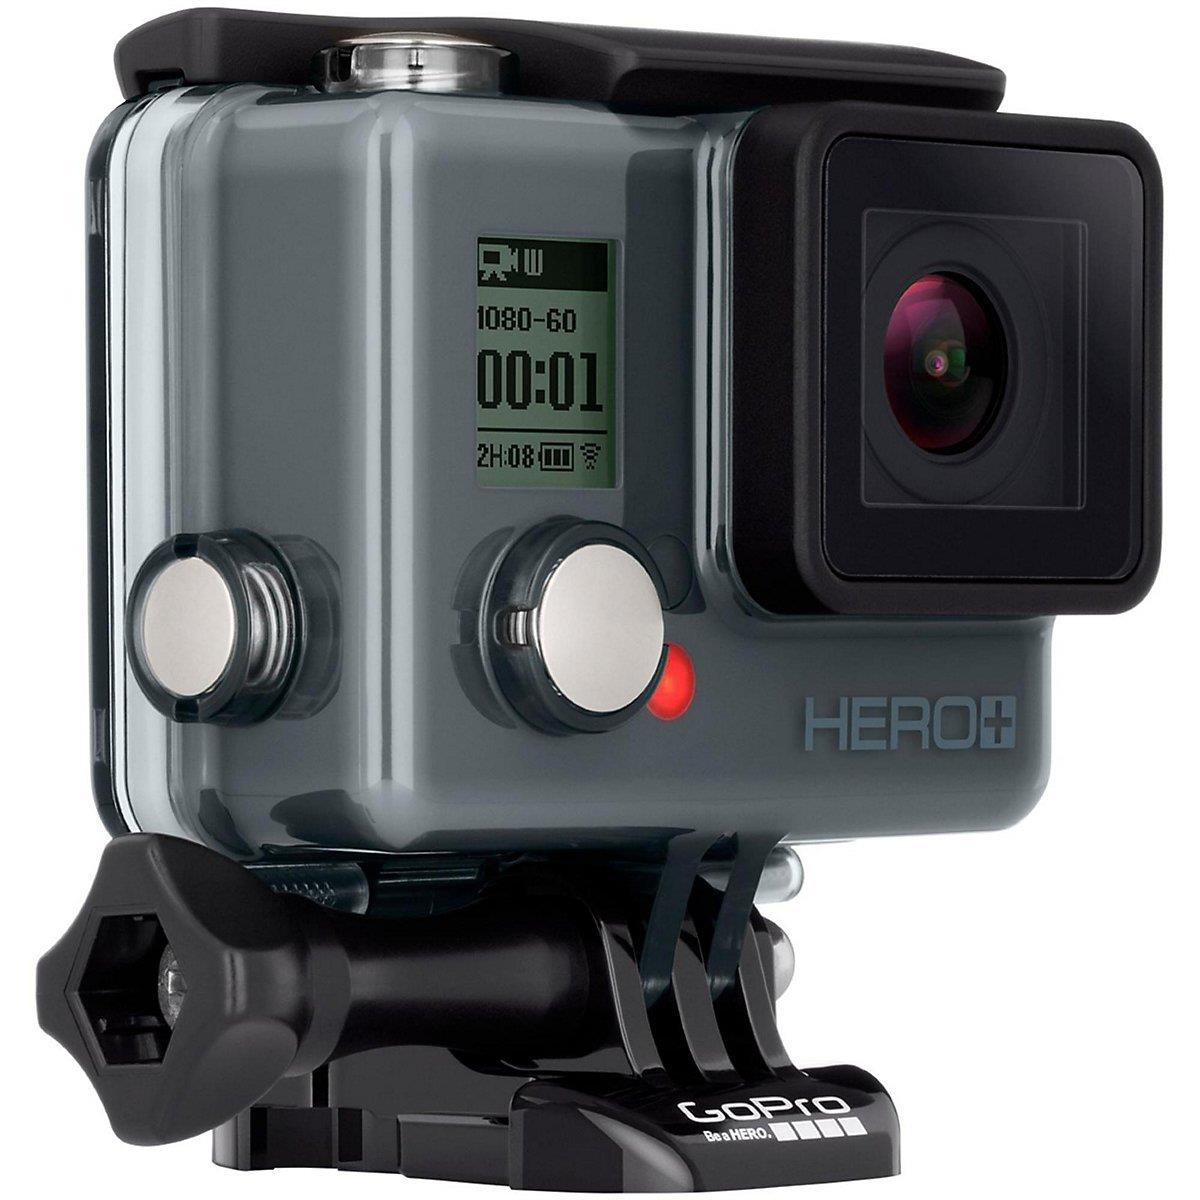 GoPro Hero +LCD | Built-In Wi-Fi + Bluetooth enables connectivity Tradeline Apple